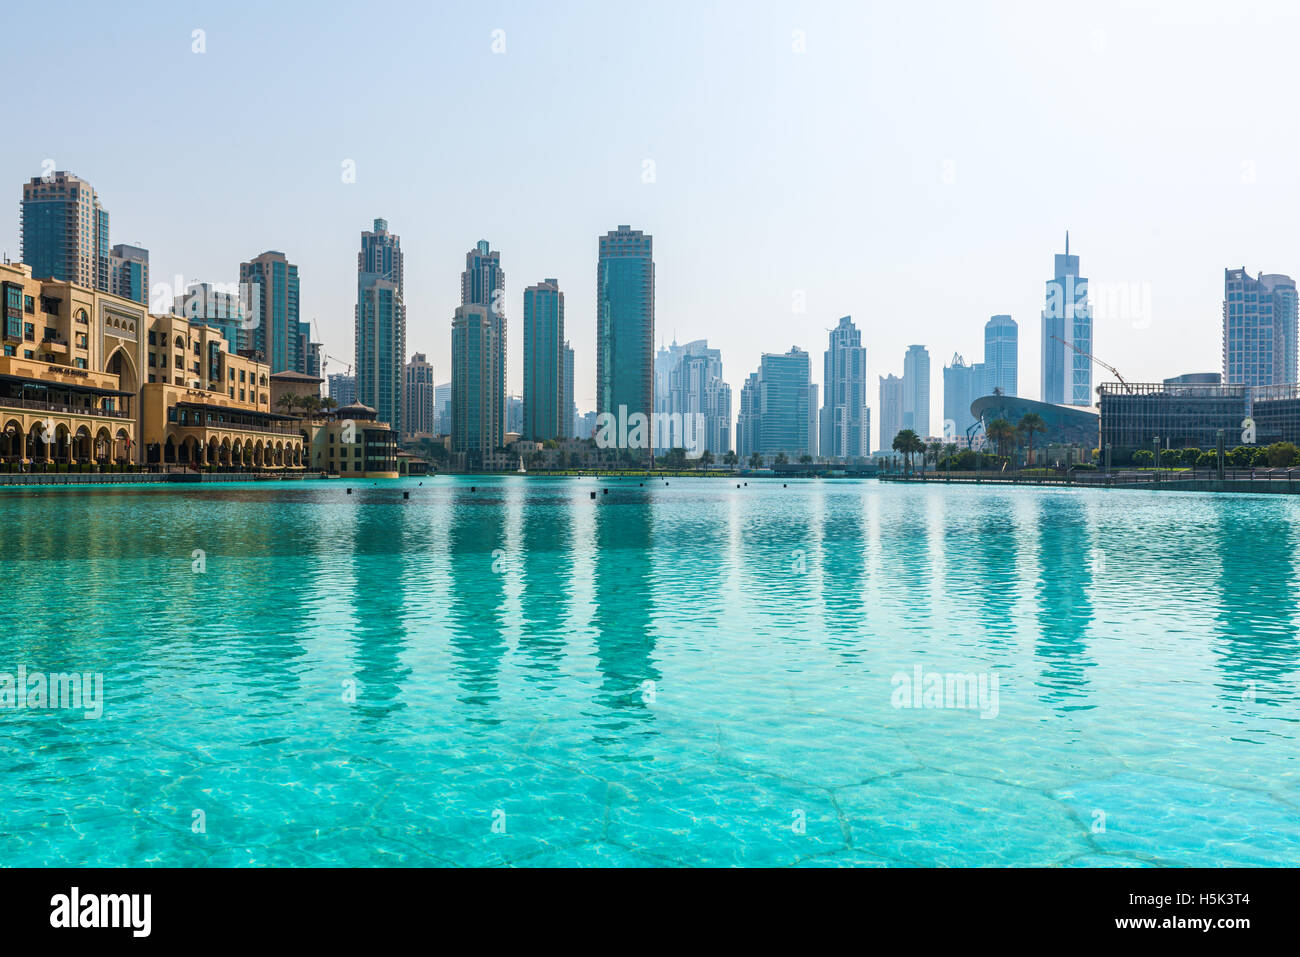 Skyline View Of The Skyscrapers And Modern Architecture Of Dubai